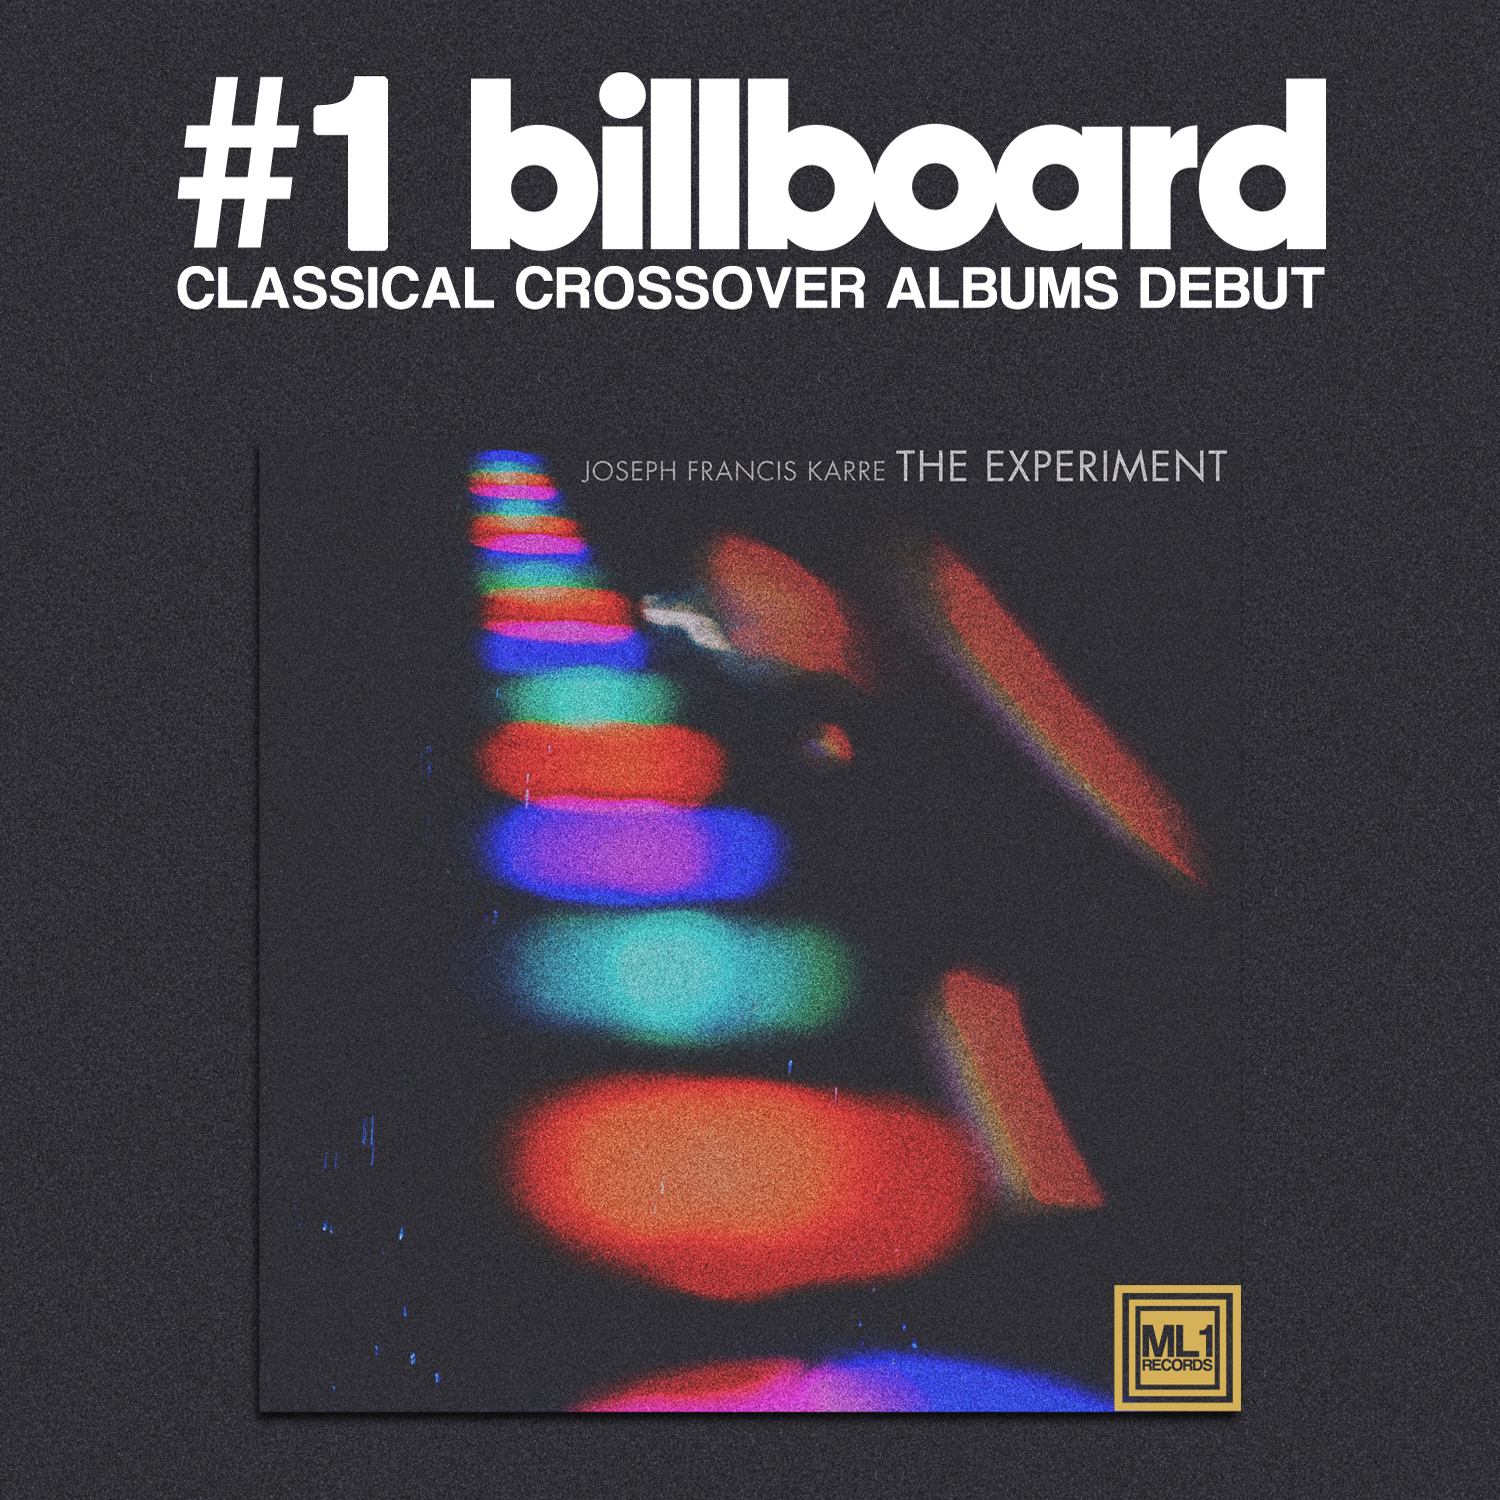 Joseph Francis Karre - The Experiment #1 on Billboard